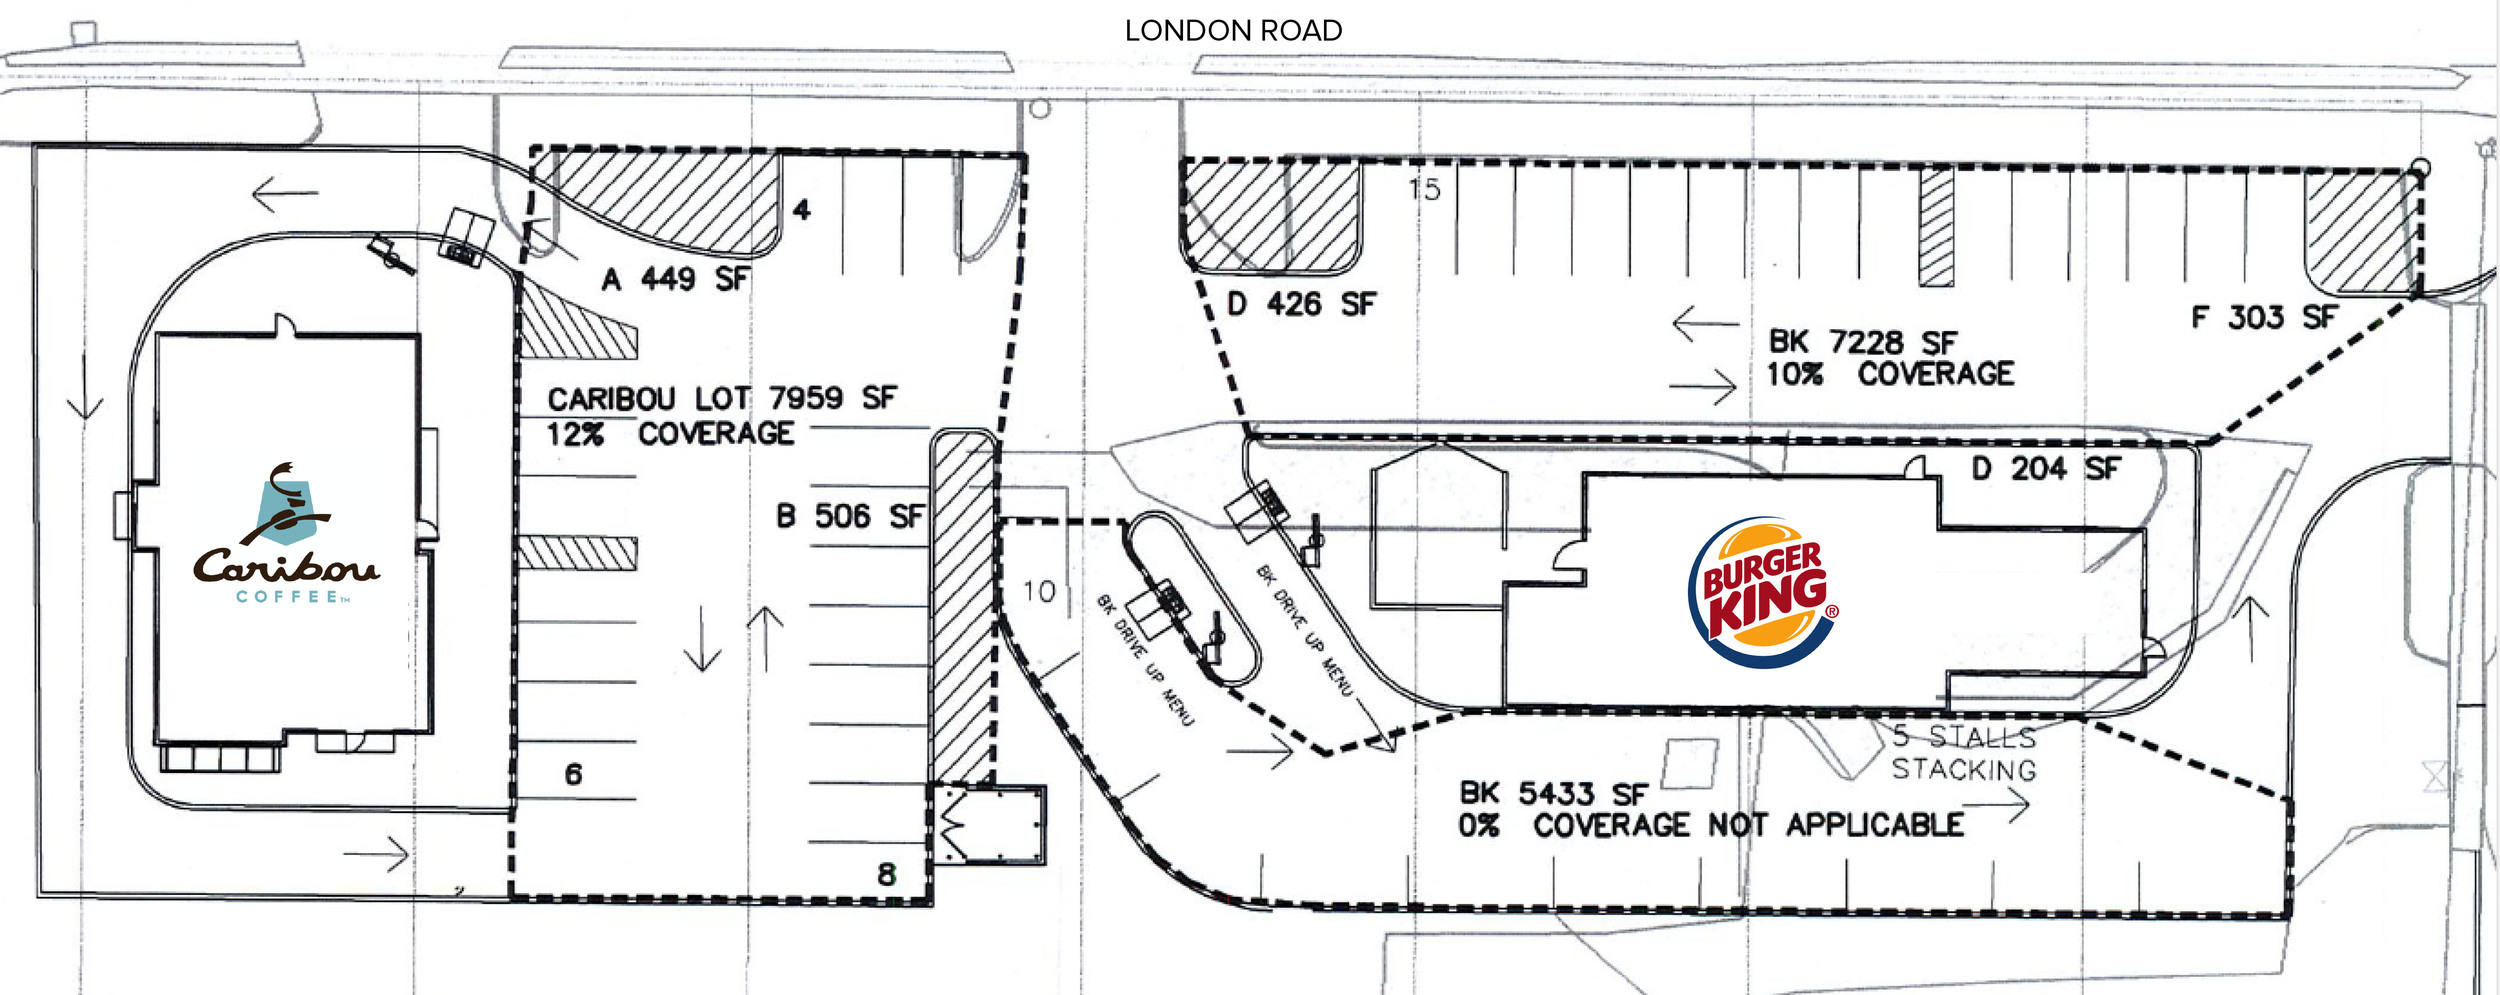 Above:  Overview of the Burger King site redevelopment